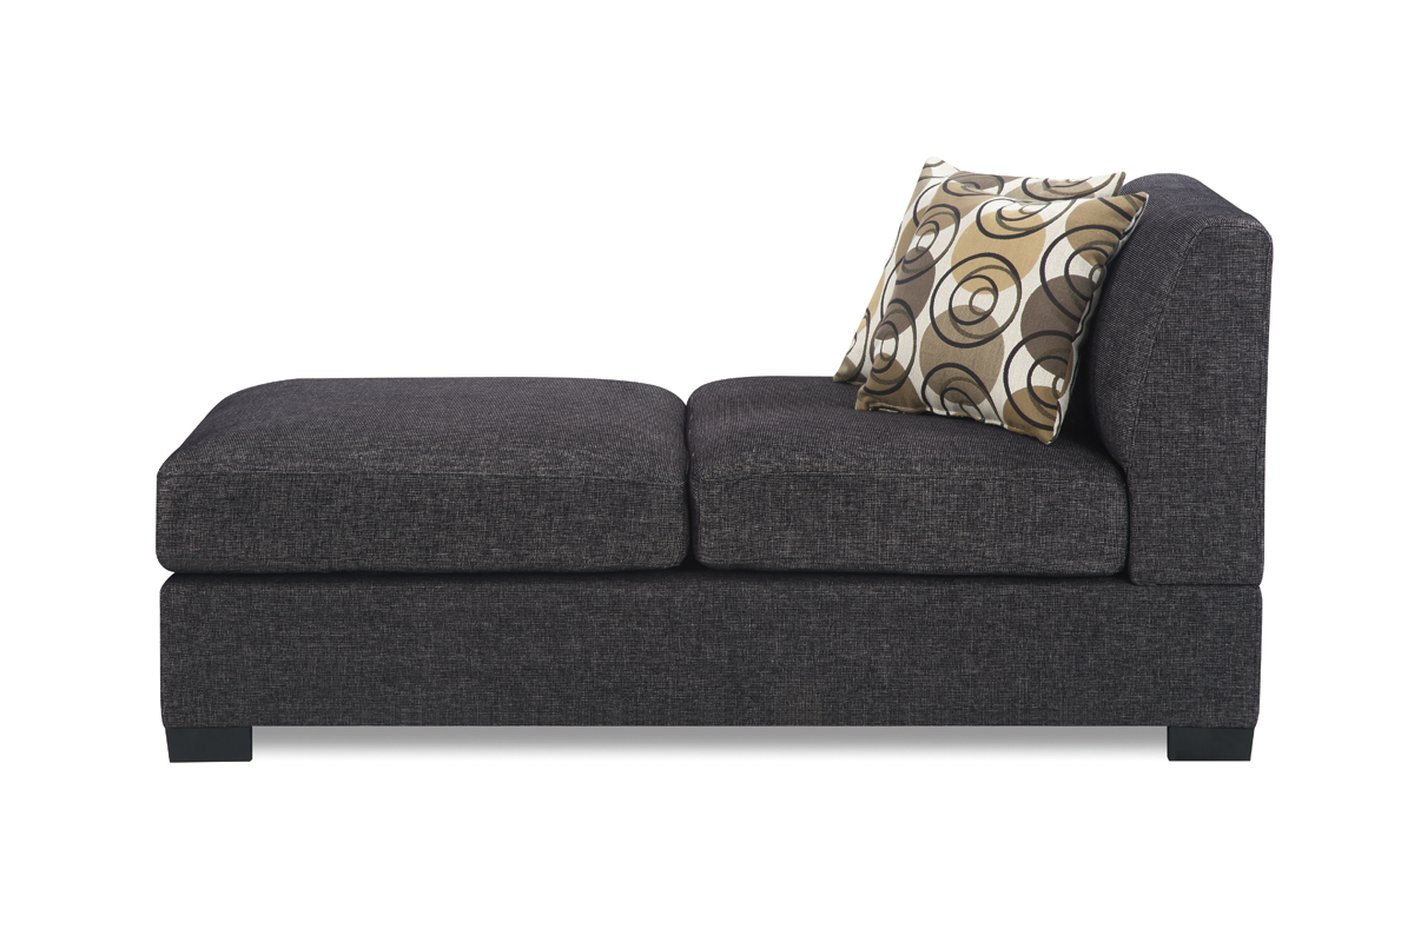 Grey Fabric Chaise Lounge Steal A Sofa Furniture Outlet Los